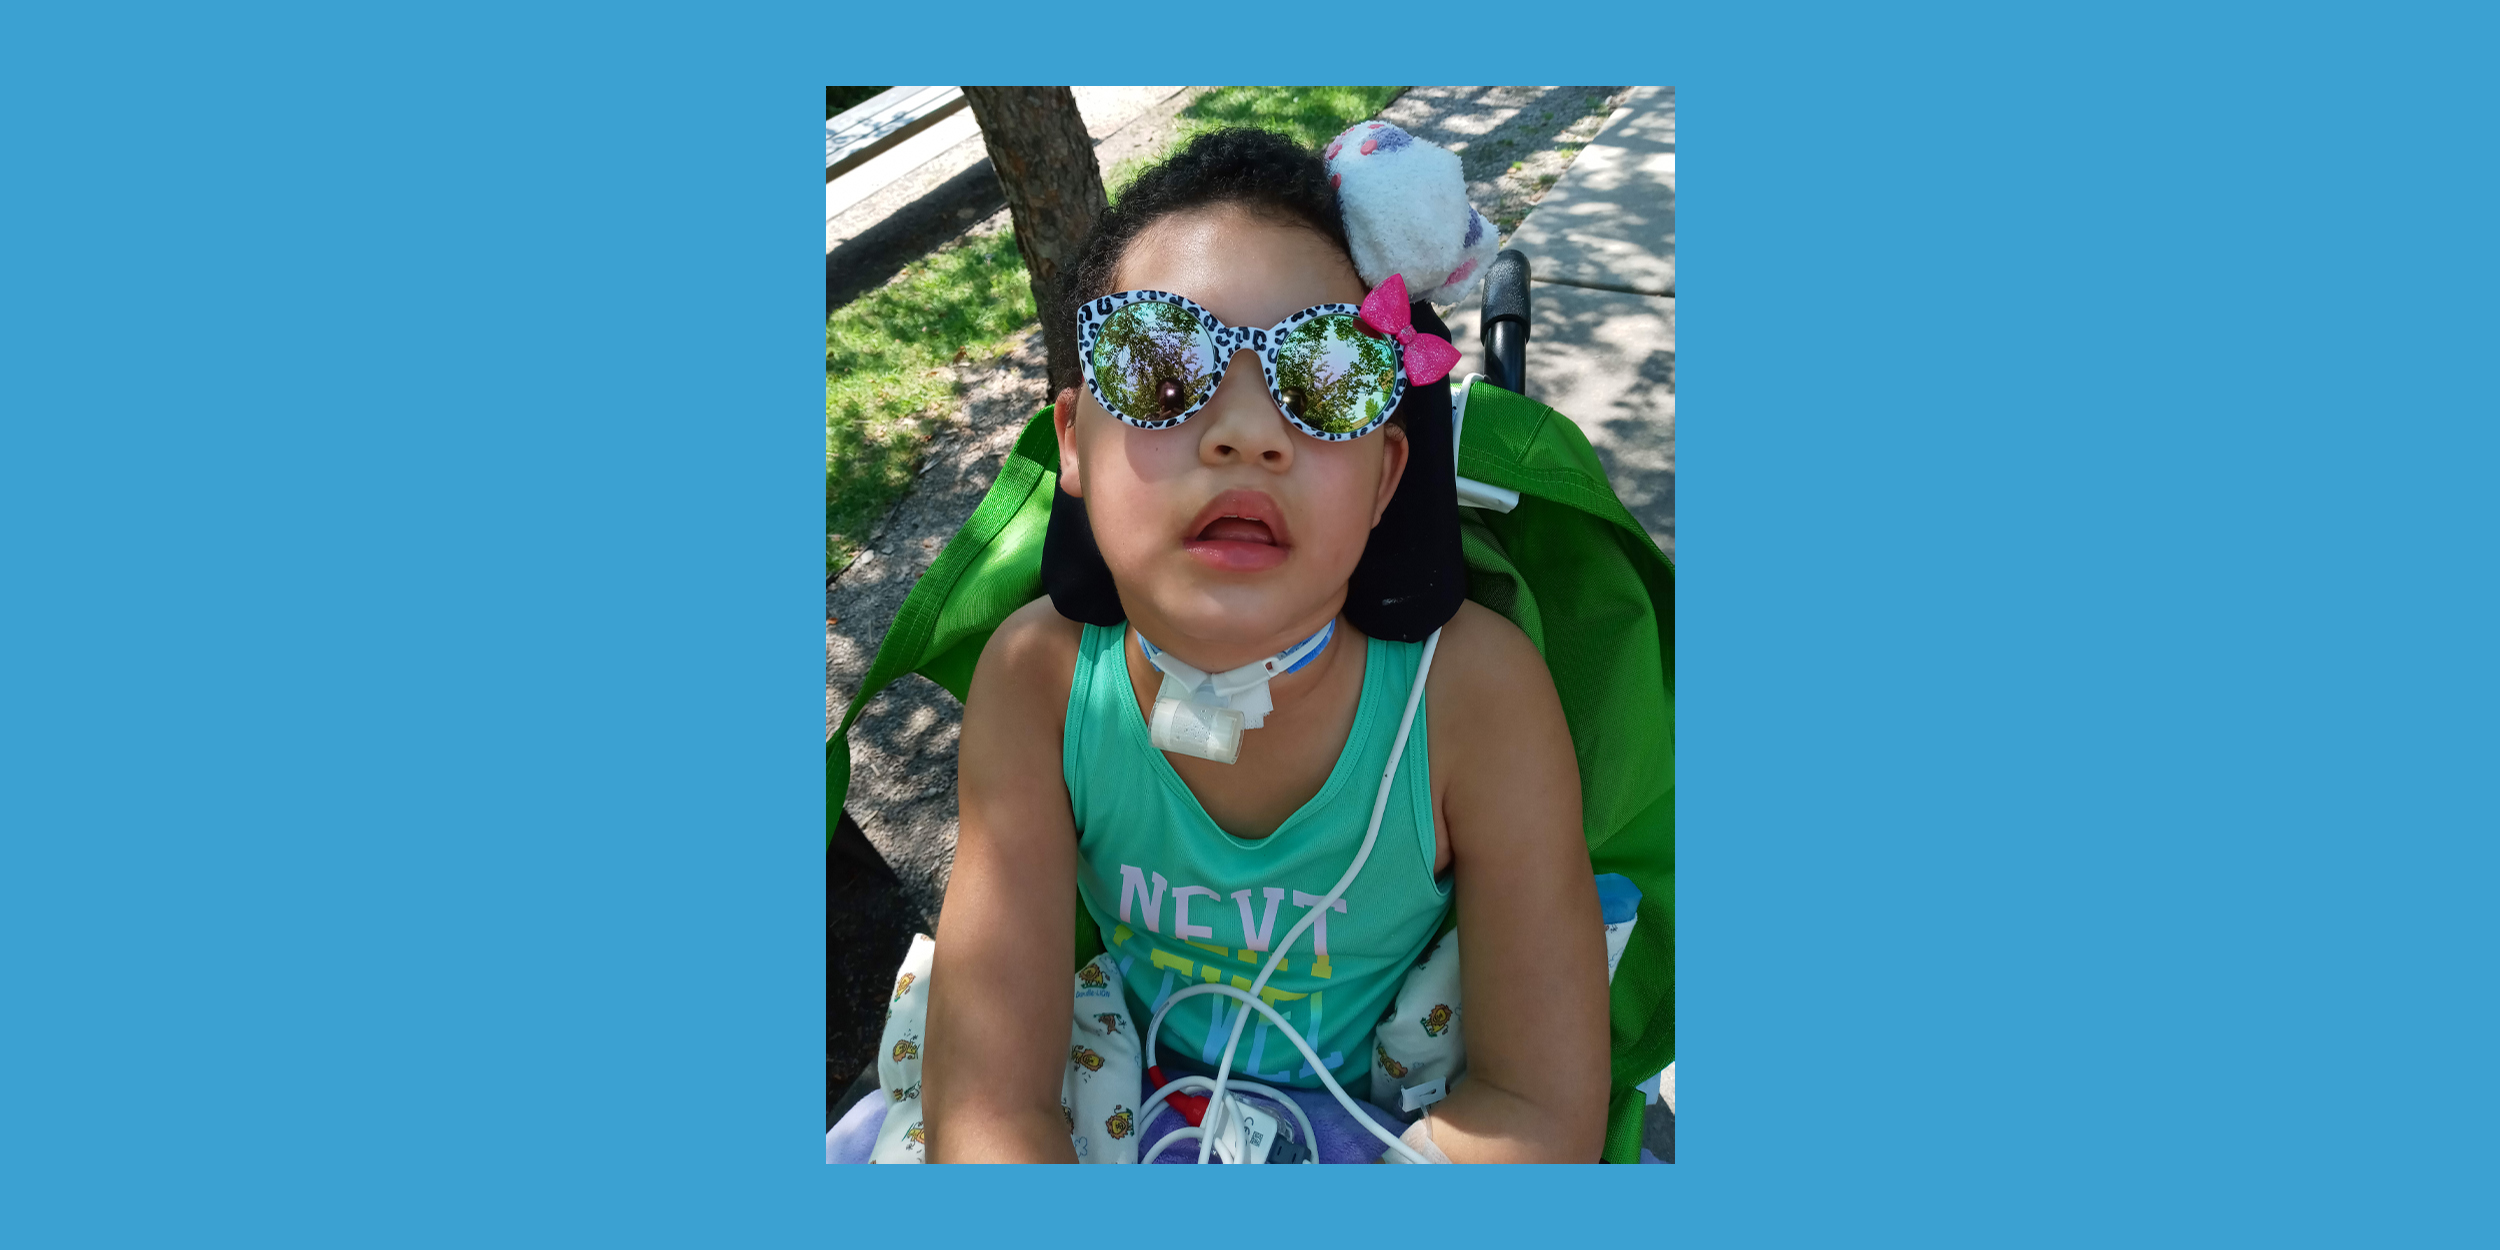 Covid likely led to a rare disorder that left 8-year-old girl paralyzed